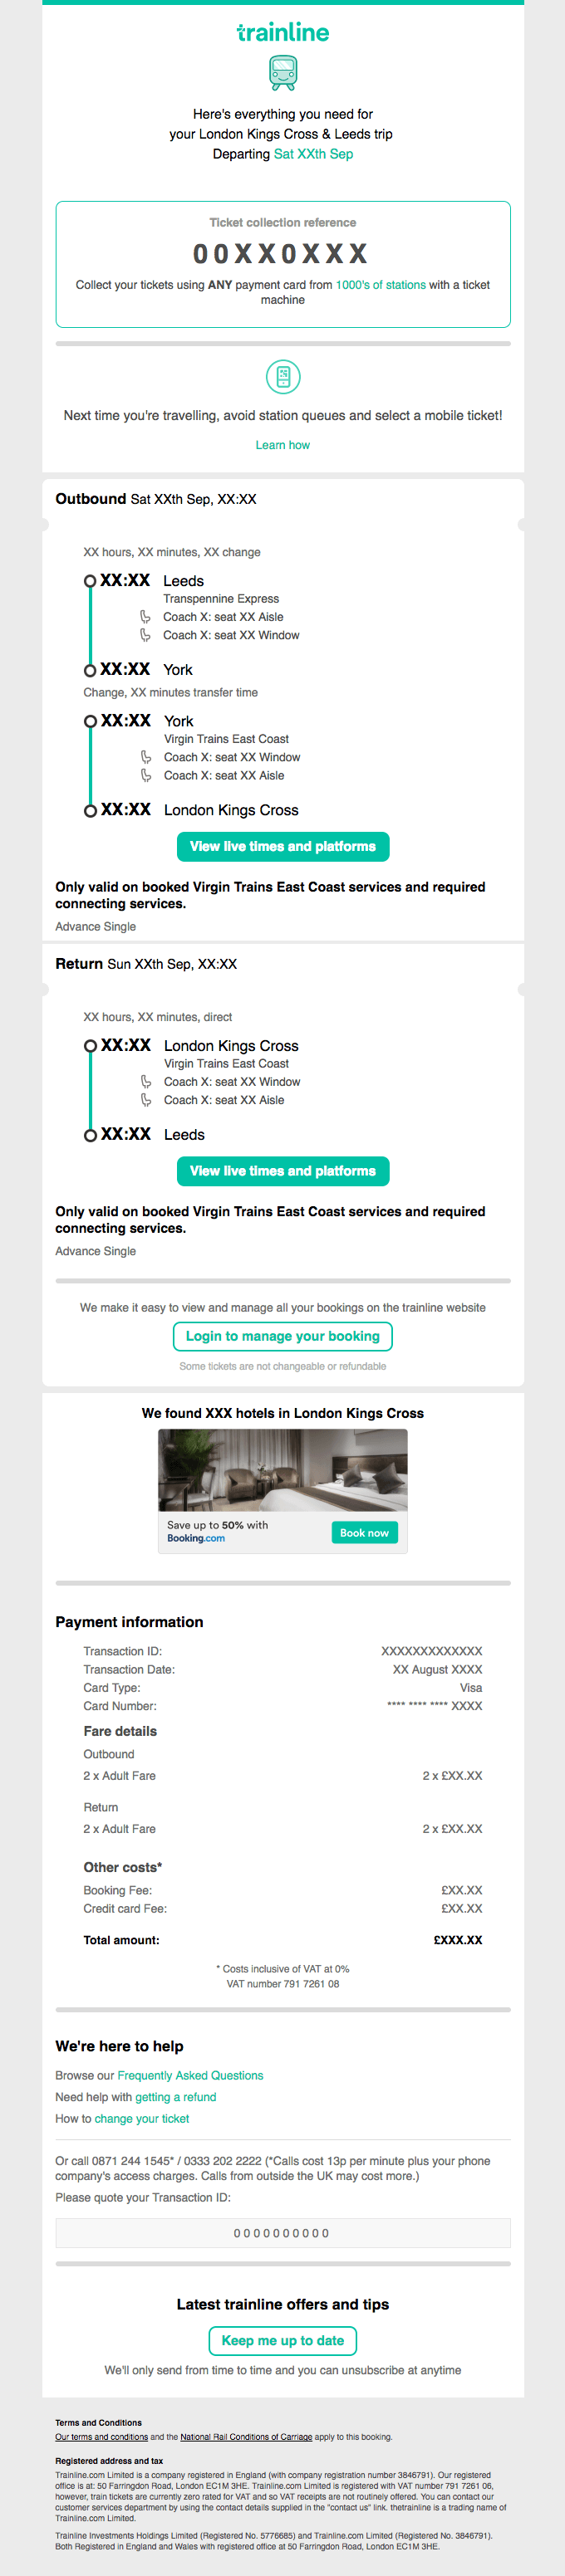 Trainline - Post-purchase email